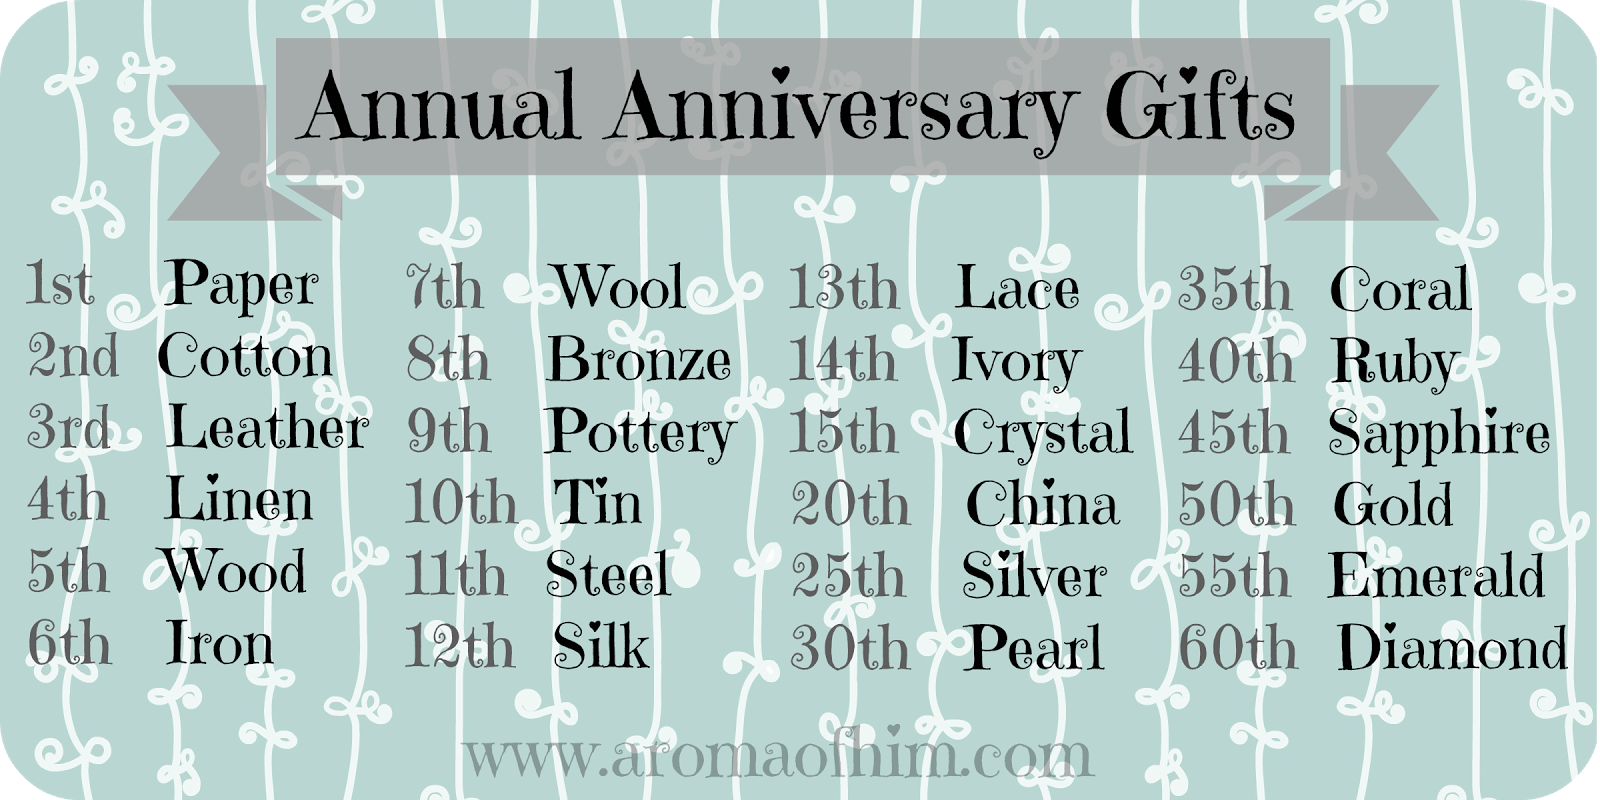 Wedding anniversary gifts wedding anniversary gifts for What is the 4 year wedding anniversary gift